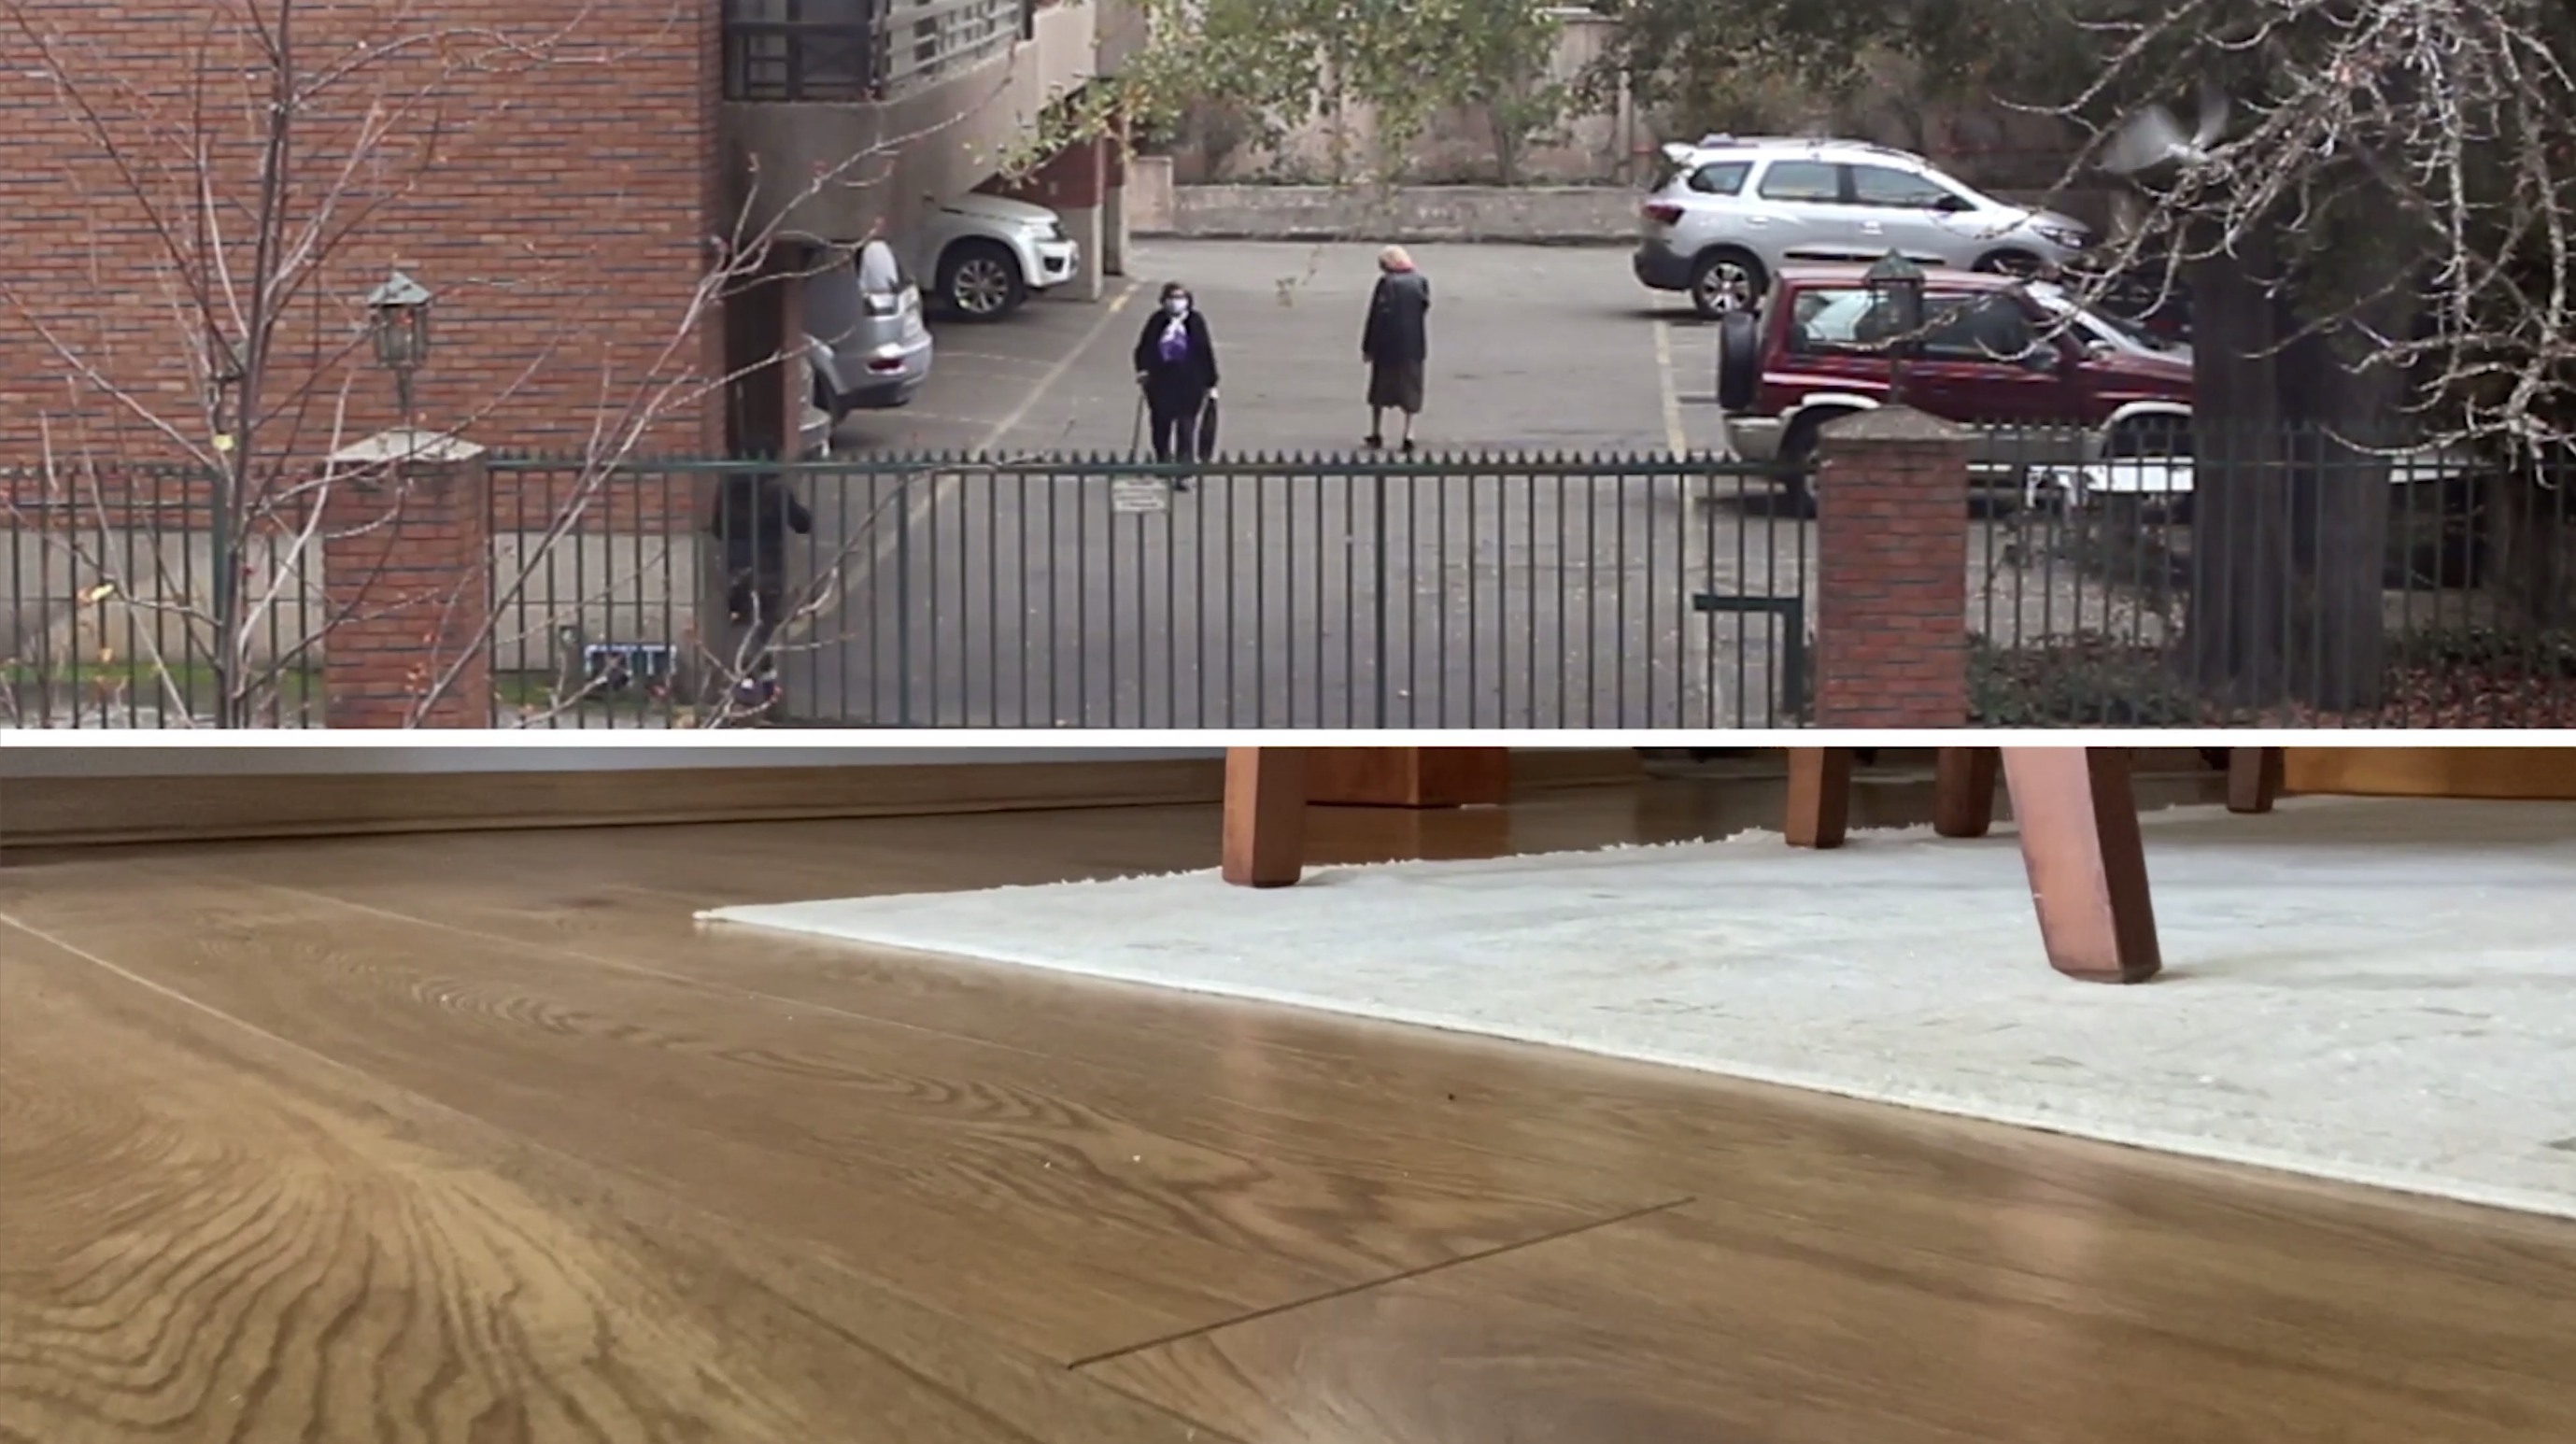 Wide Screen divided in two horizontally, top is view out of window to parking lot of brixk building and two women with masks walking, bottom image is taken at floor level of wood floor, white carpet, and table legs.